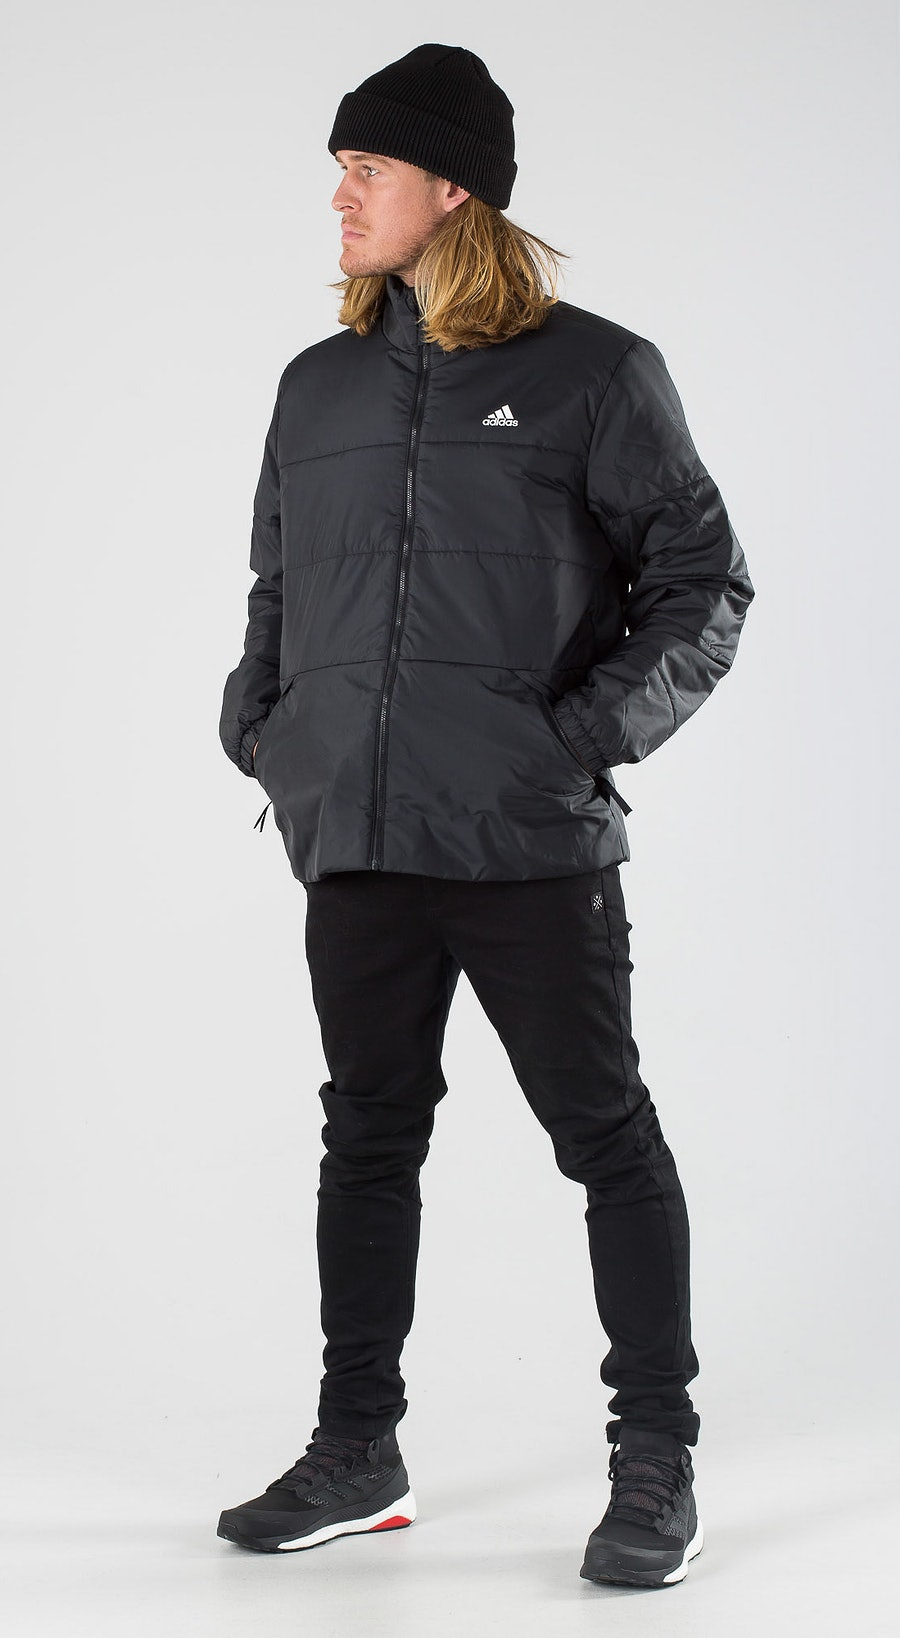 Adidas Terrex BSC 3S Insulated Black/Black Outfit Multi